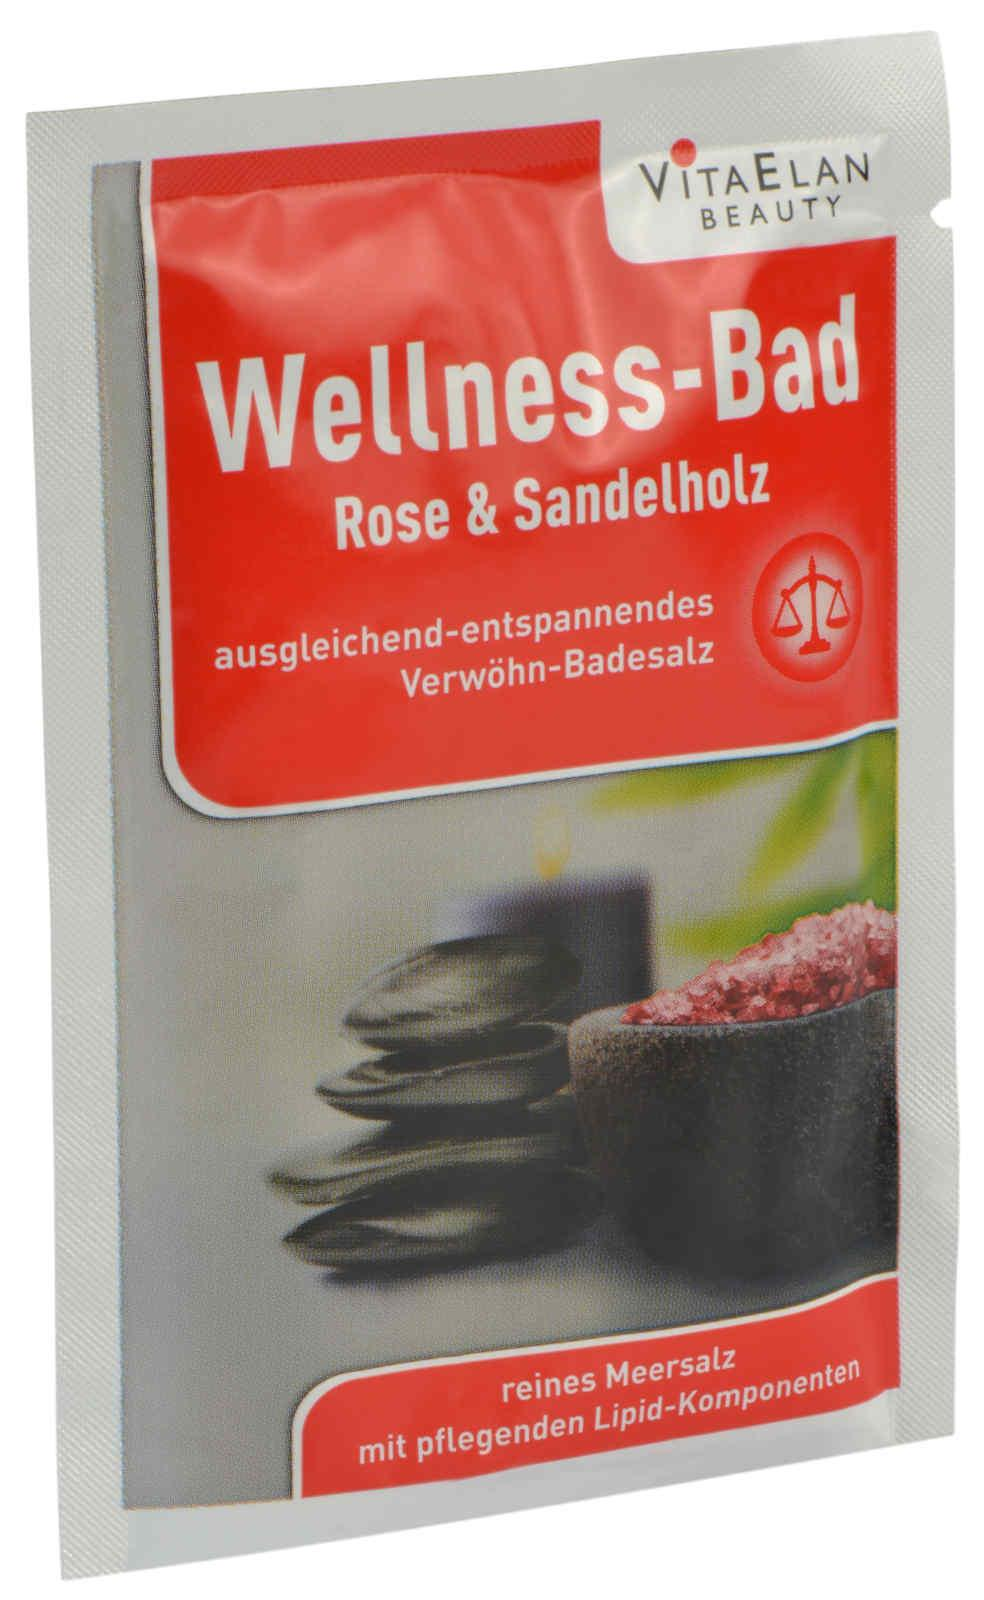 Wellness-Bad Sandelholz